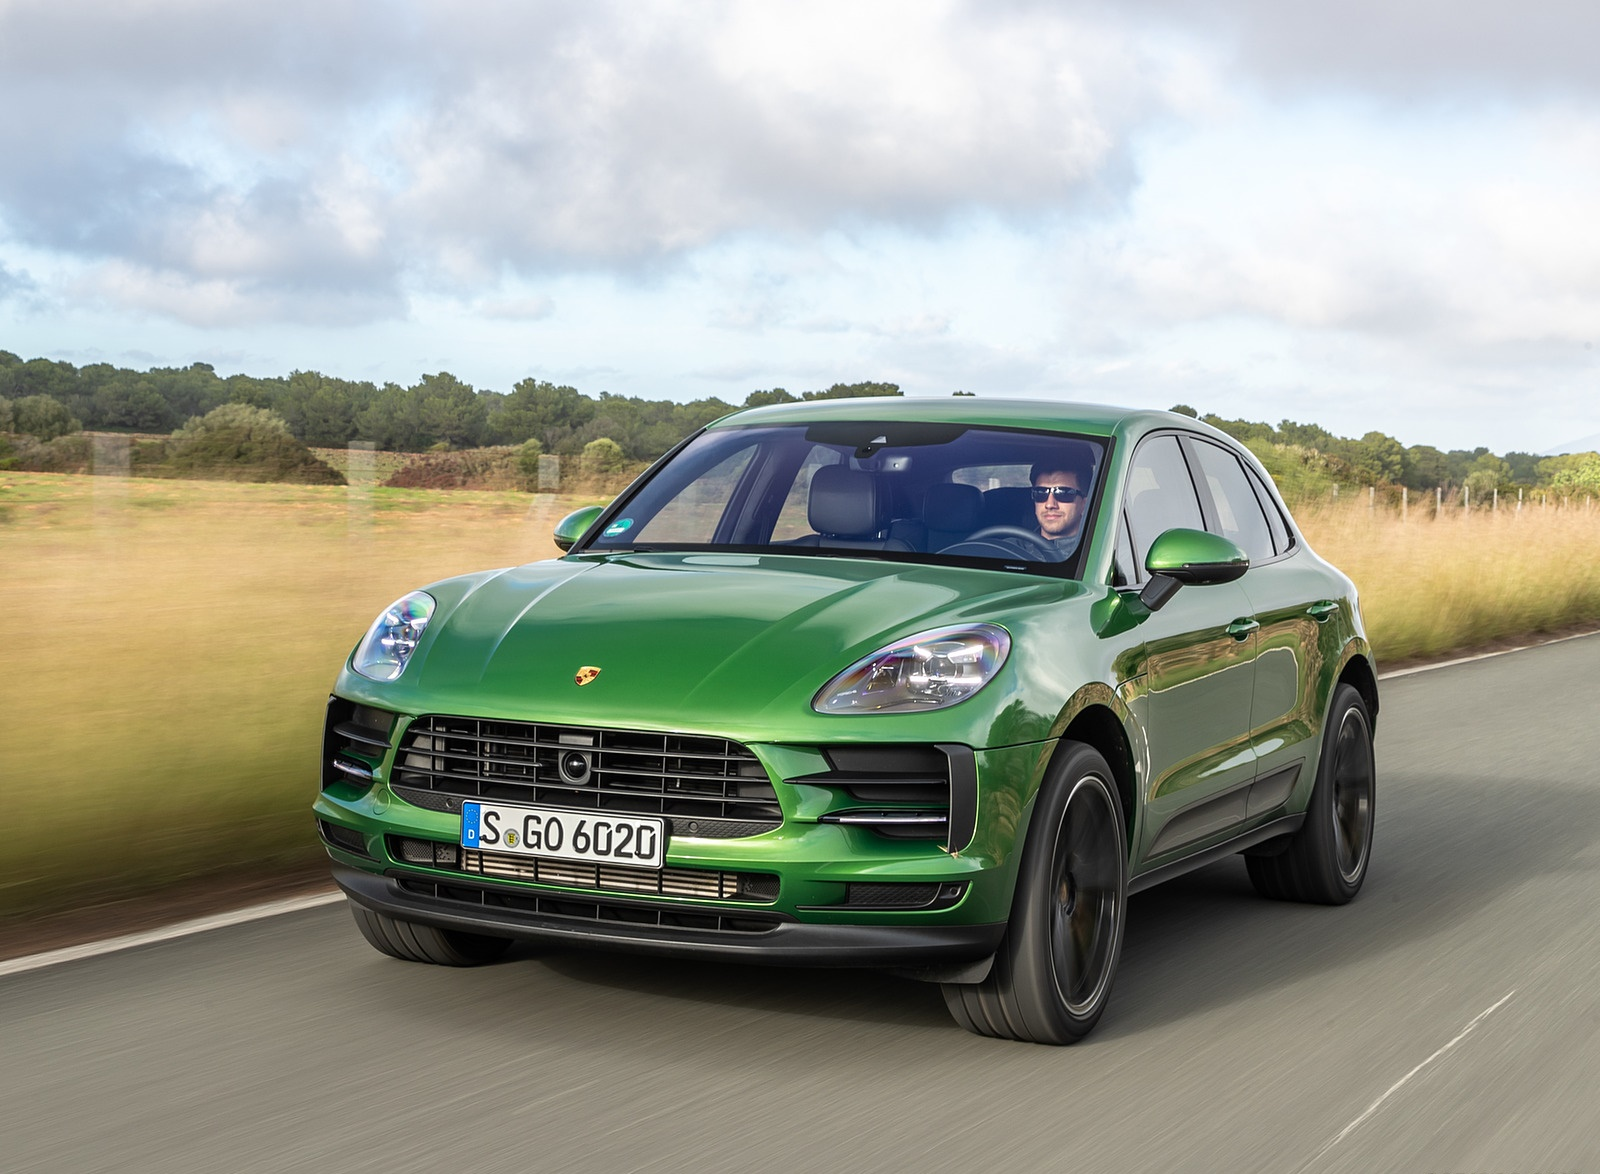 2019 Porsche Macan S (Color: Mamba Green Metallic) Front Wallpaper (12)